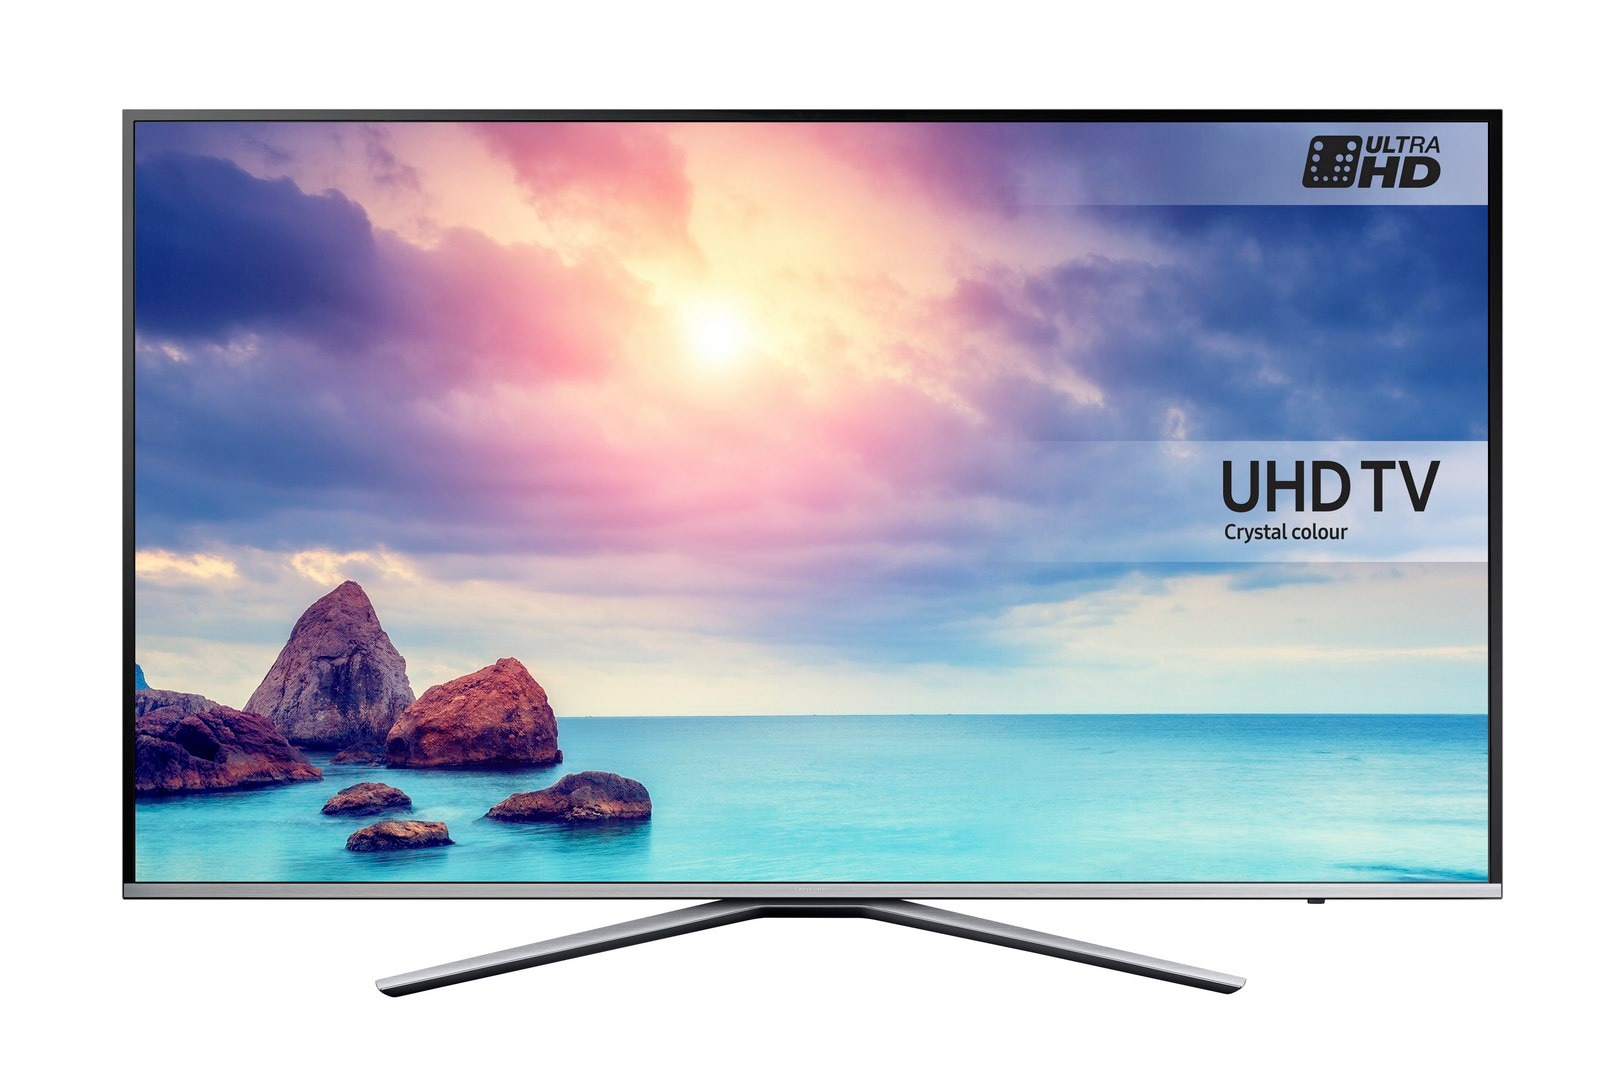 6-Series UHD TV UE40KU6400